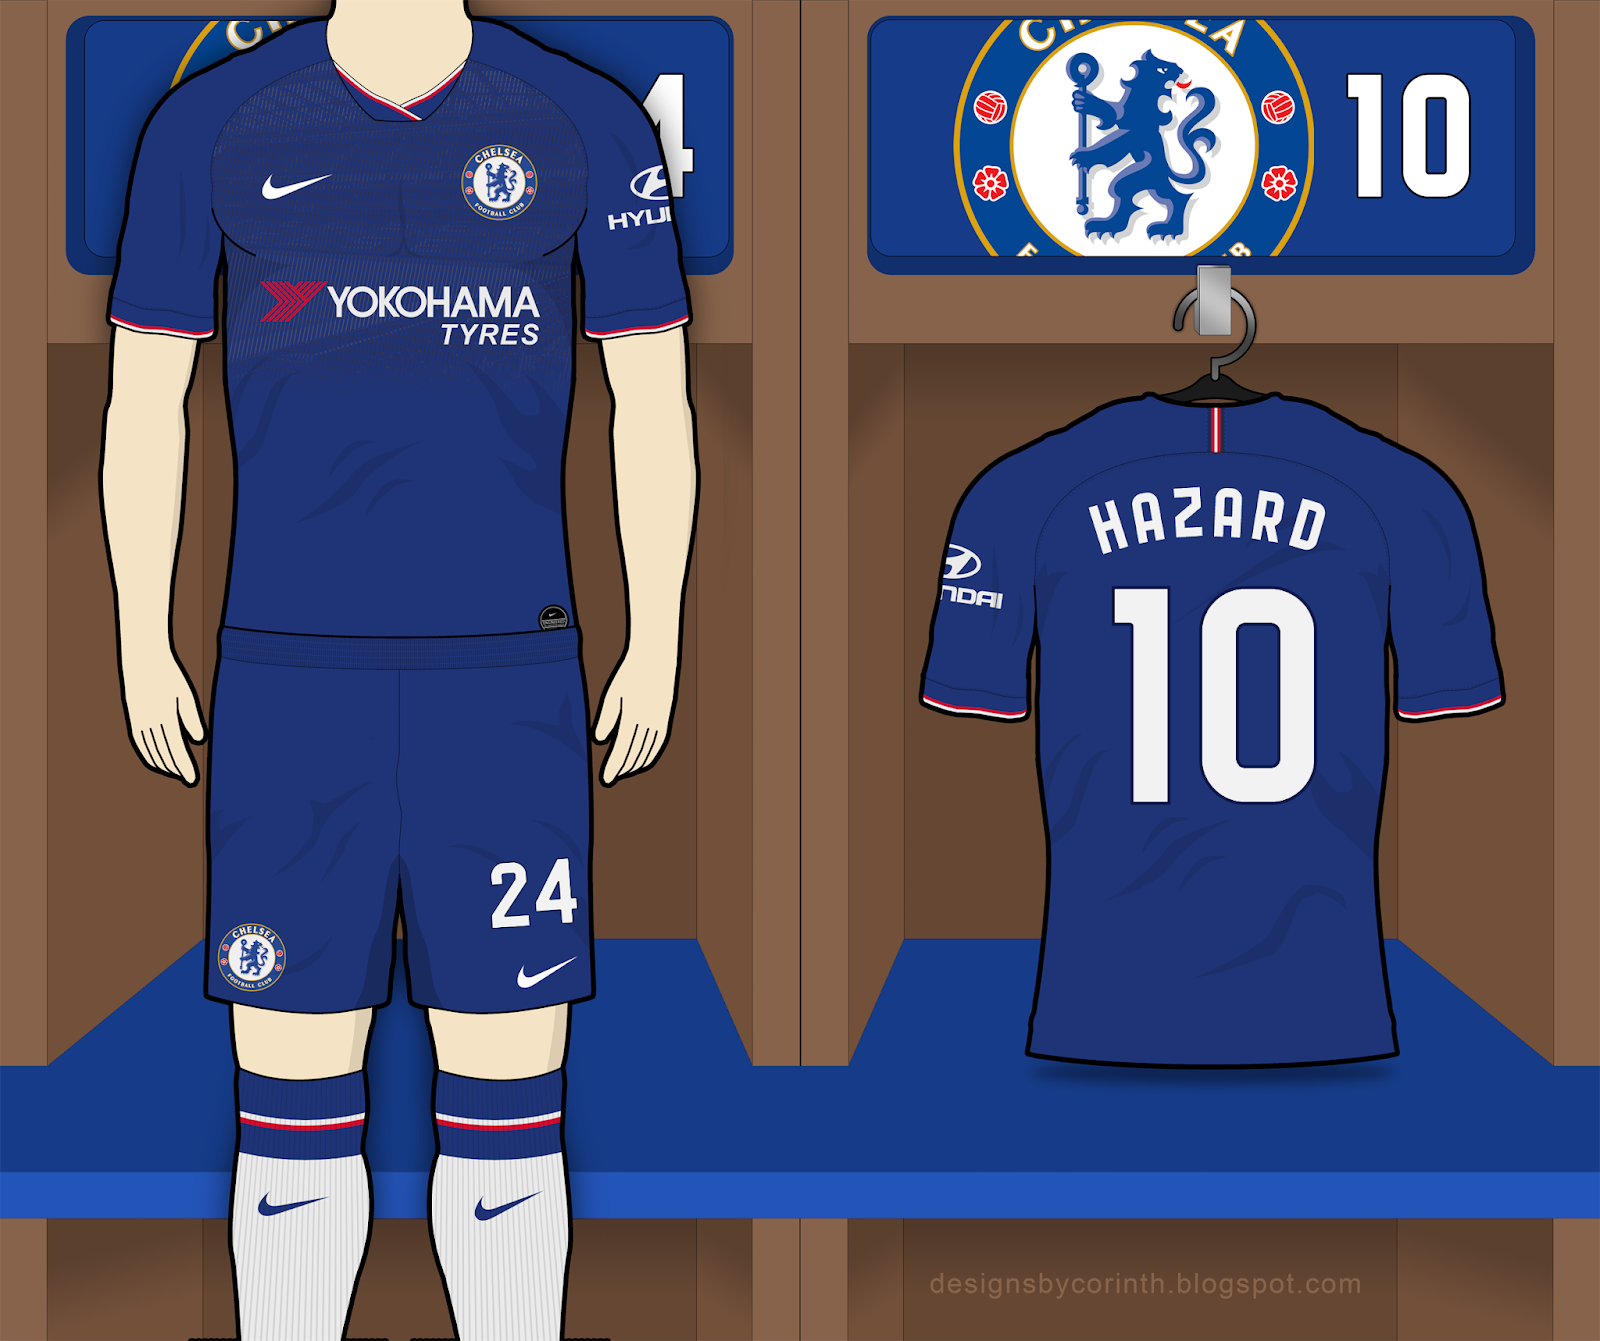 super popular 0dbc1 ba7b7 Chelsea 2019-20 Home Kit Prediction (according to leaks)